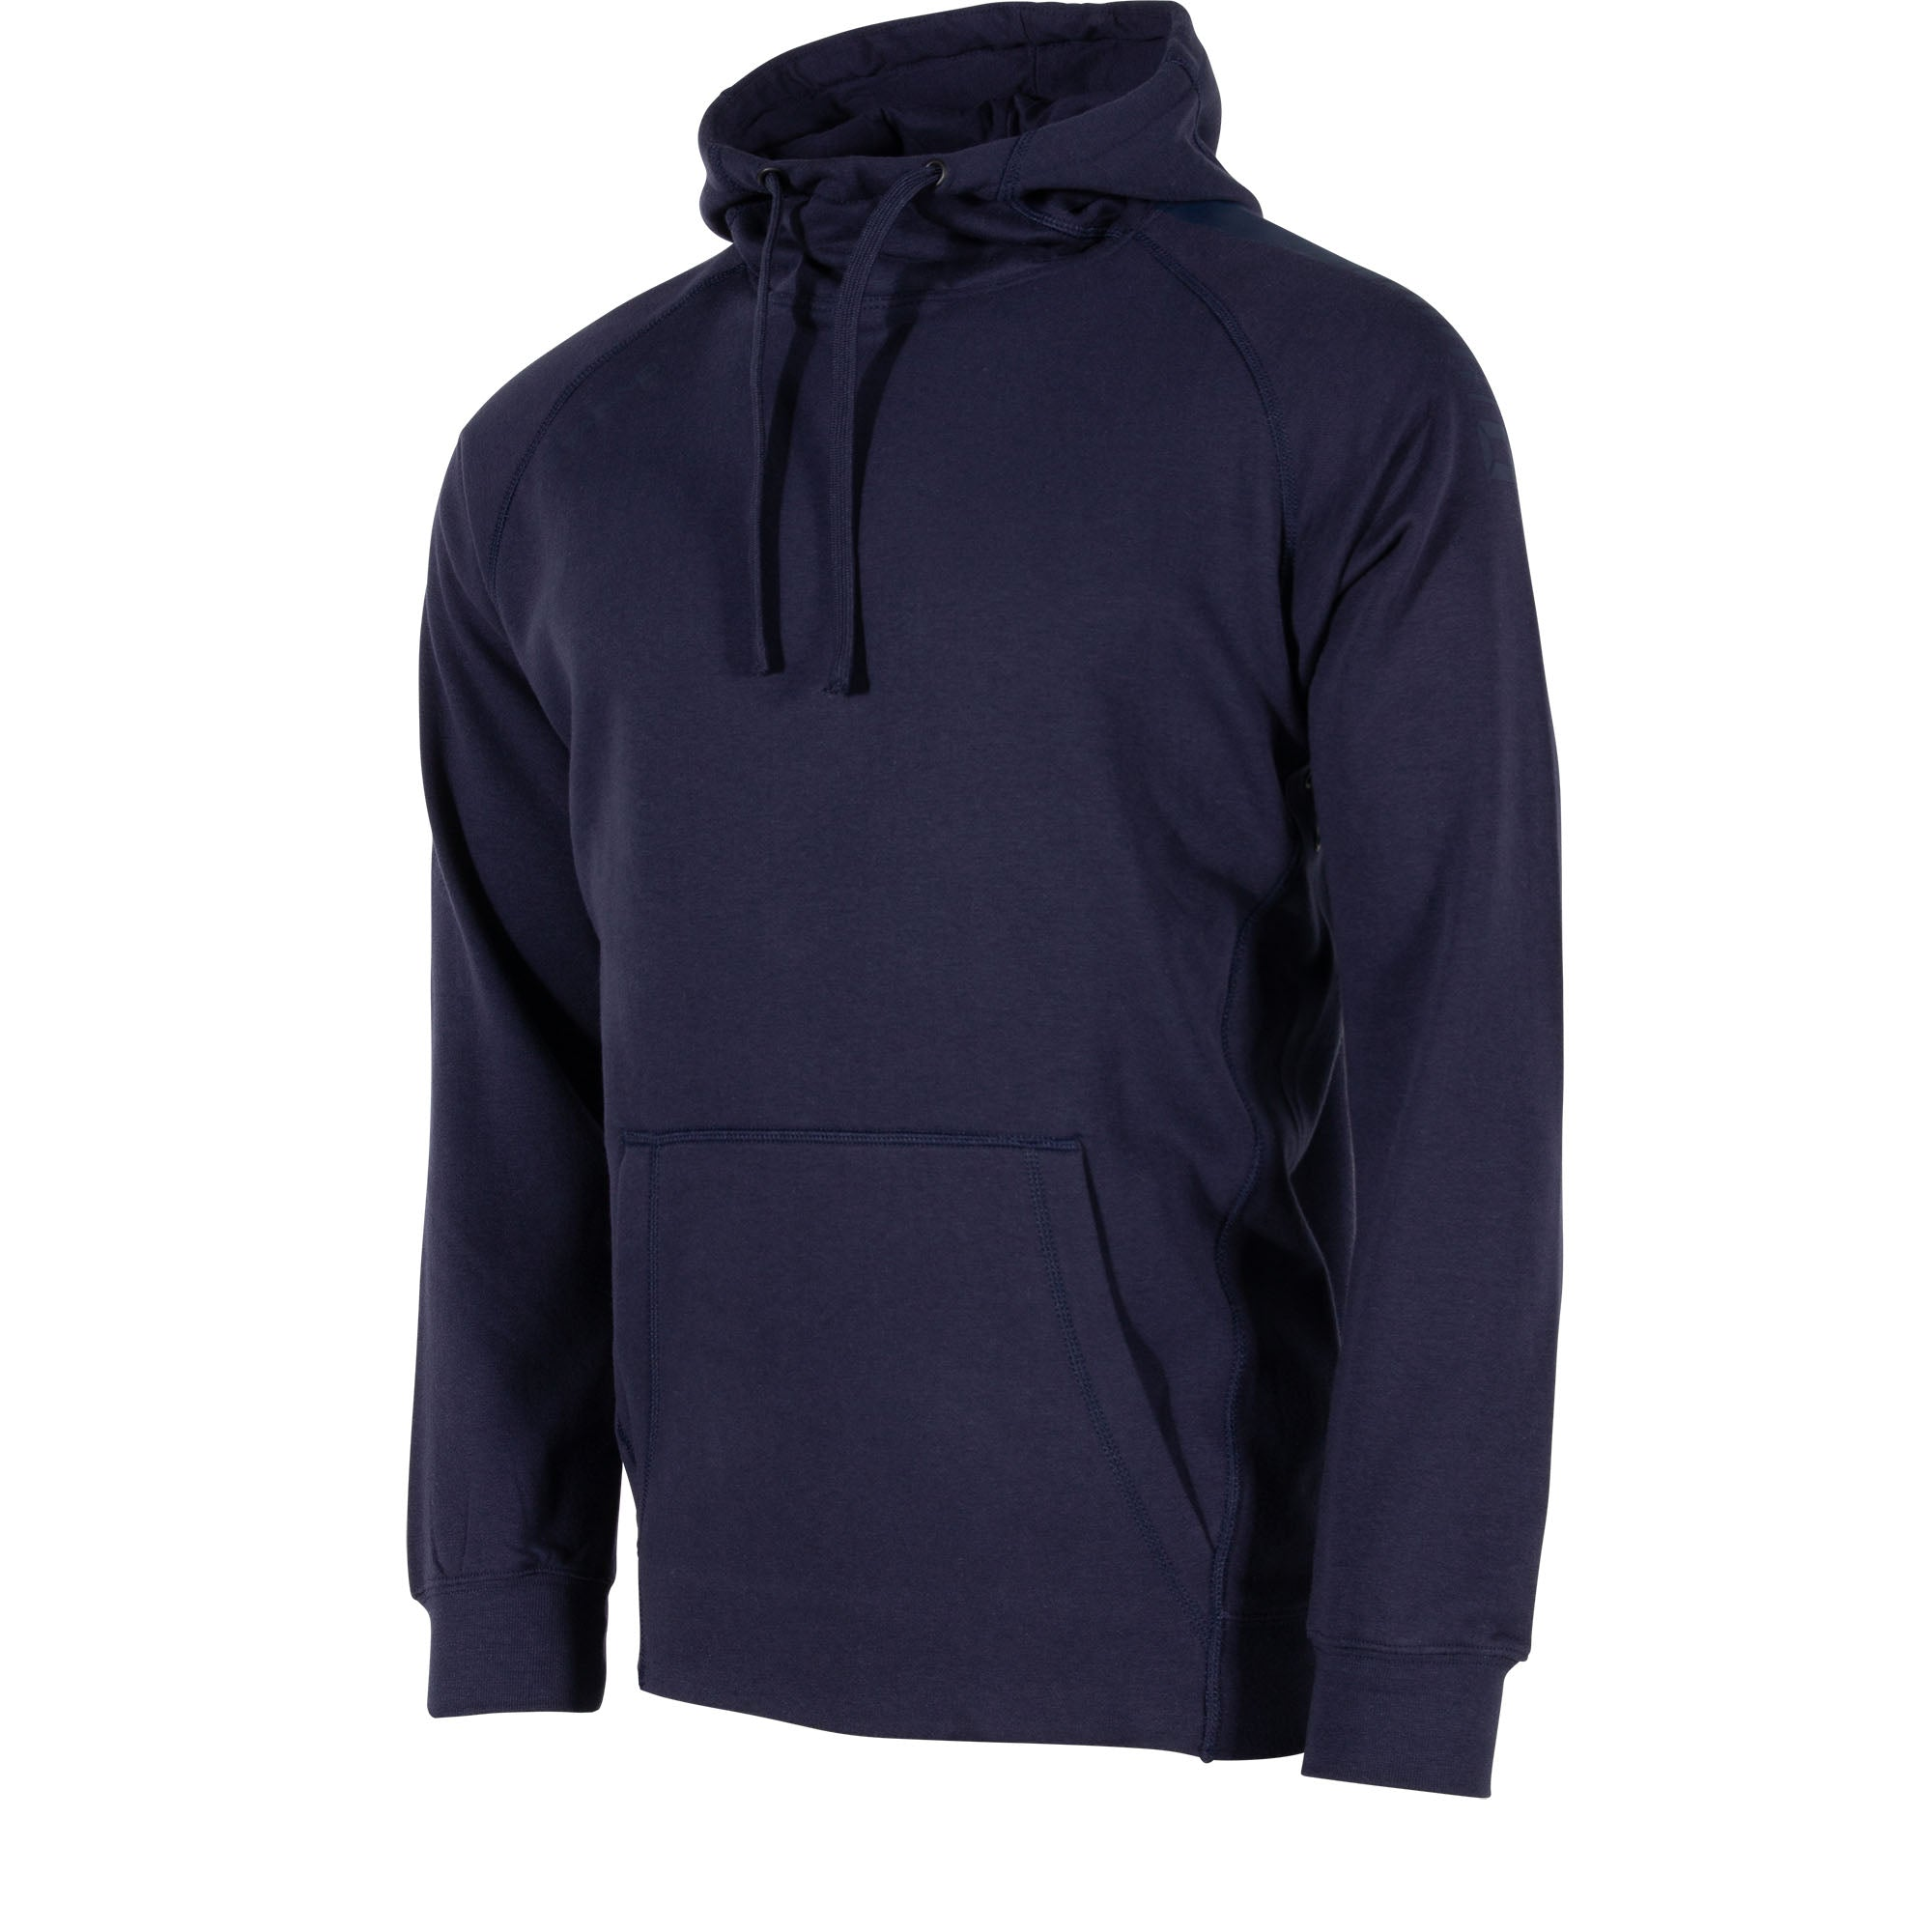 Front view of Stanno Ease Hoodie in navy with front Kangaroo pouch. Printed shoulder logo.